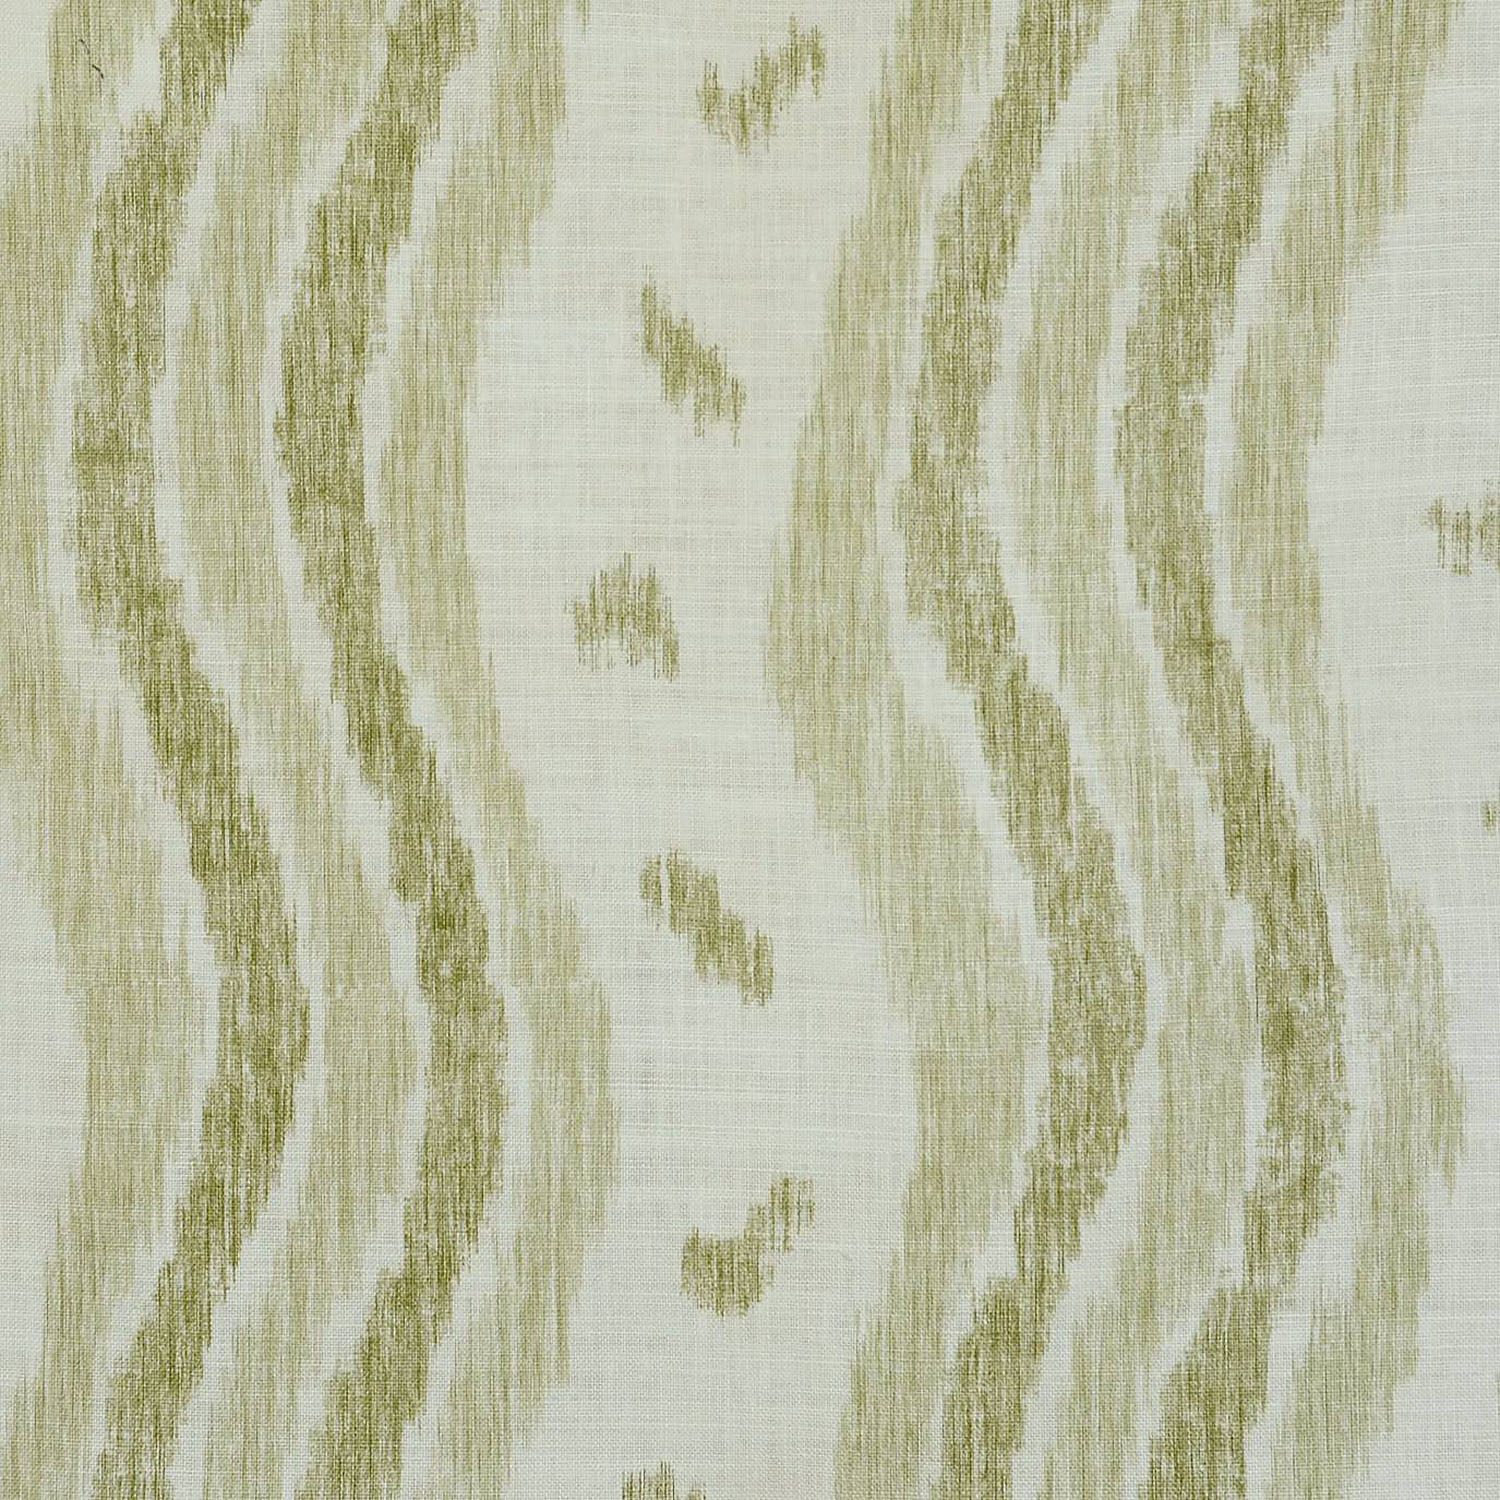 <p><strong>IKAT STRIPE</strong>green/oyster 9300-02<a href=/collection-3/ikat-stripe-green-oyster-9300-02>More →</a></p>